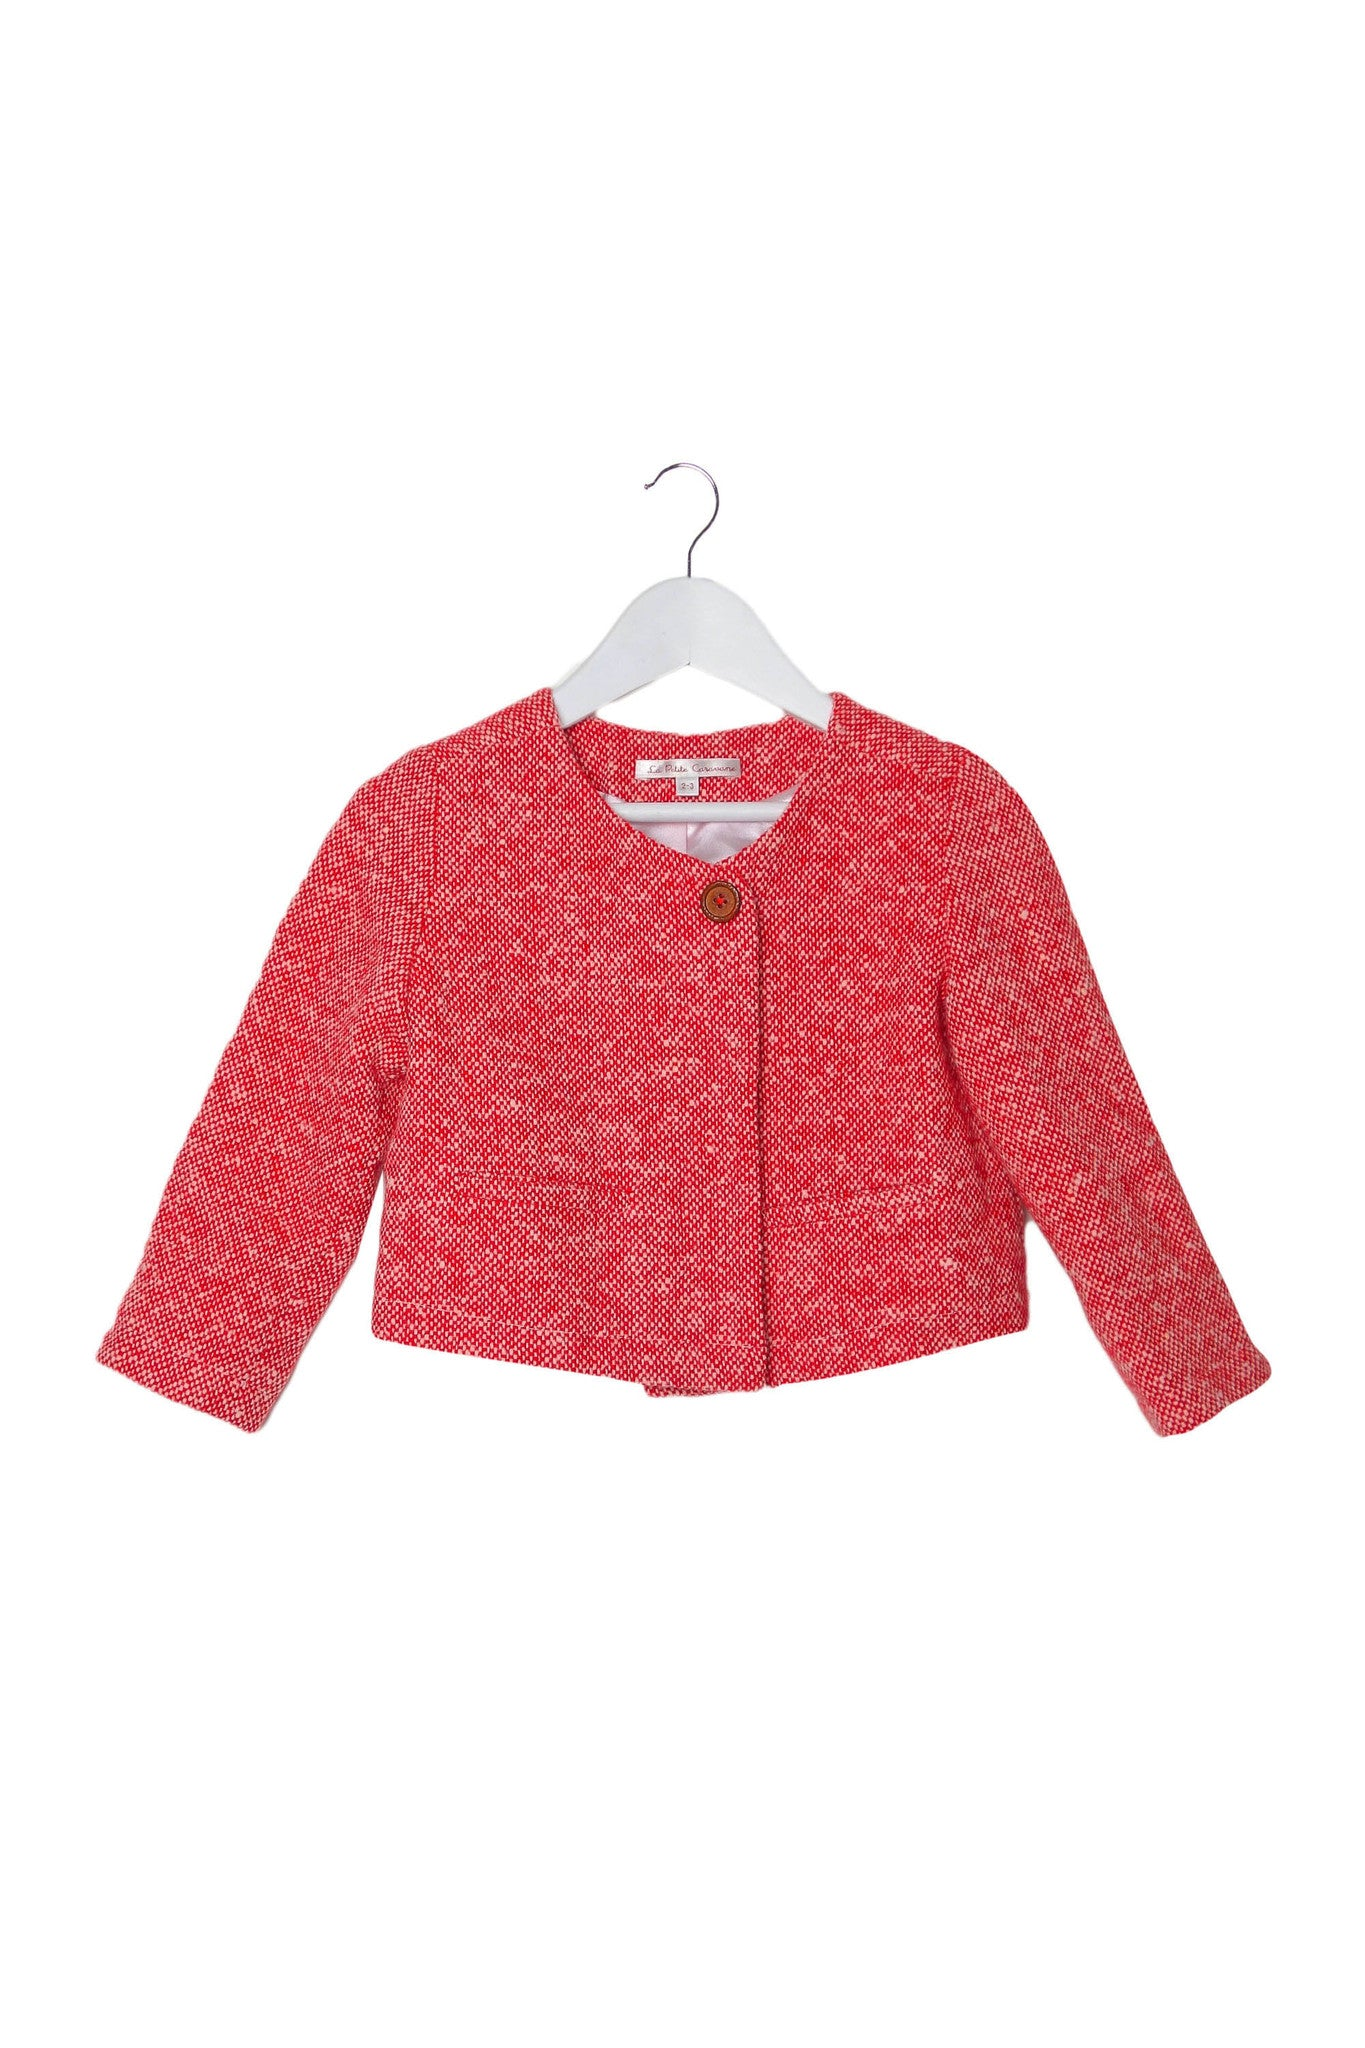 10002656 La Petite Caravane Kids~Jacket 2-3T at Retykle